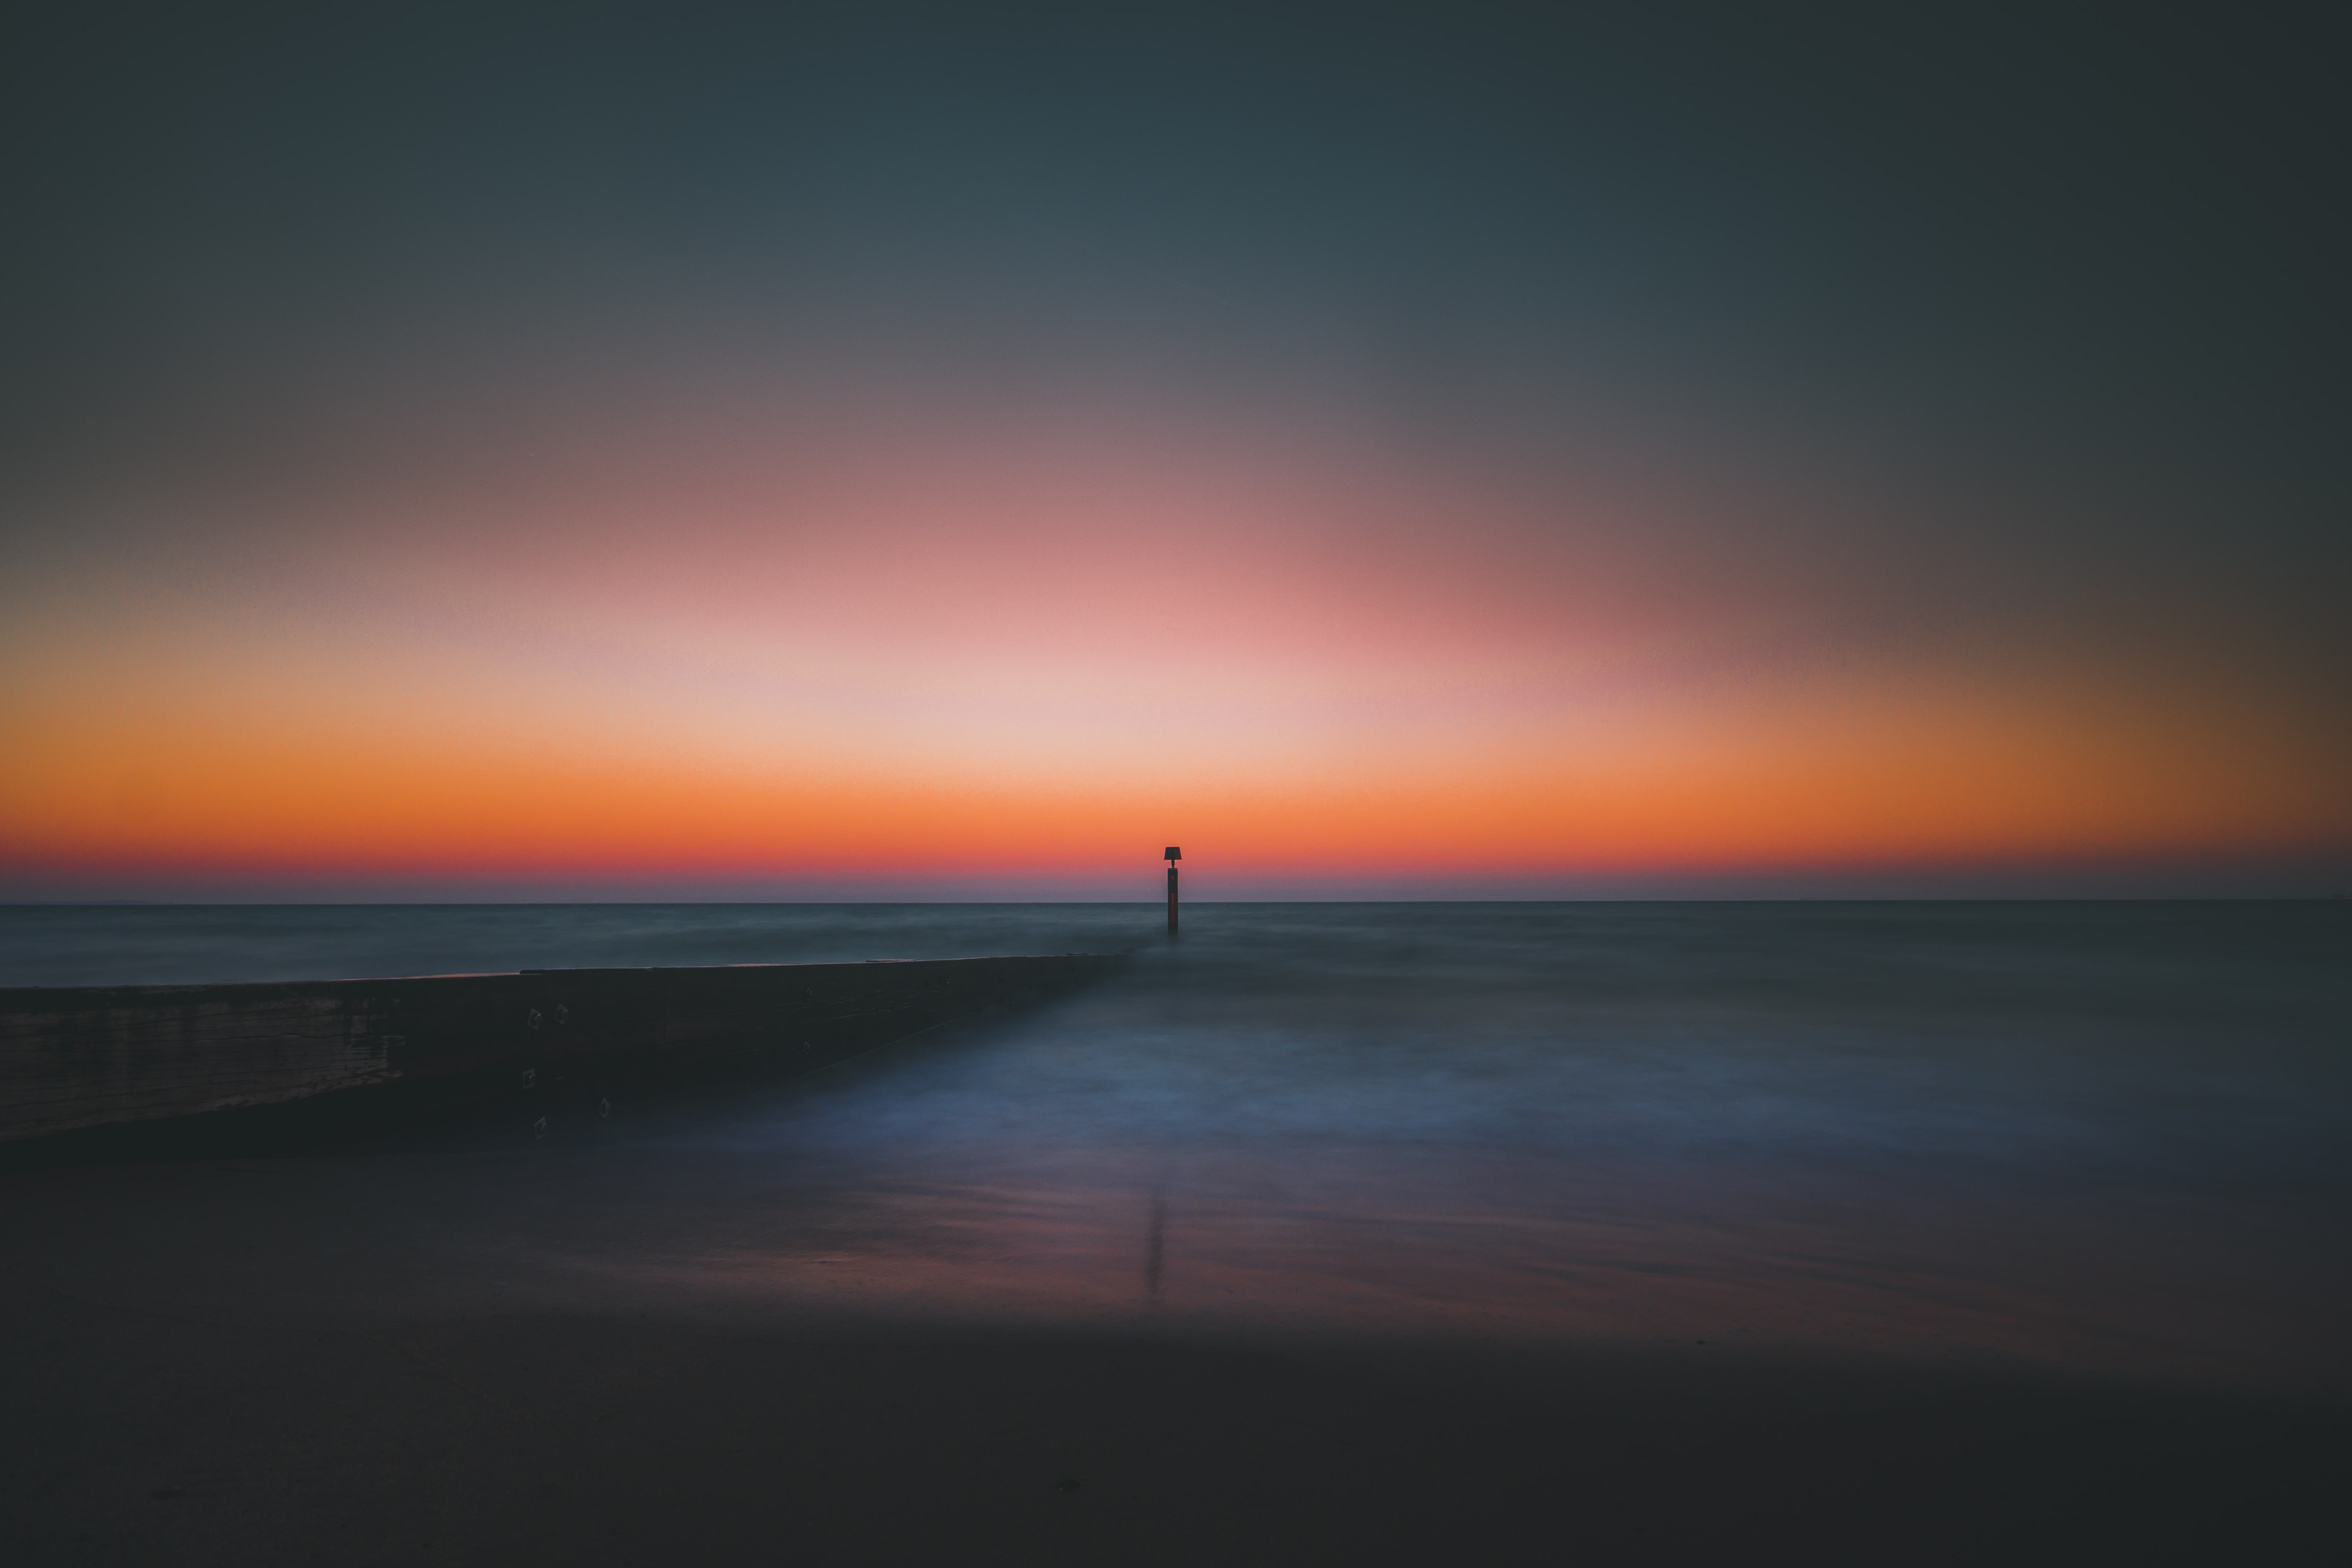 One silhouette pole in the calm, smooth sea at Bournemouth beach during sunrise-or-sunset coloring the dark sky orange